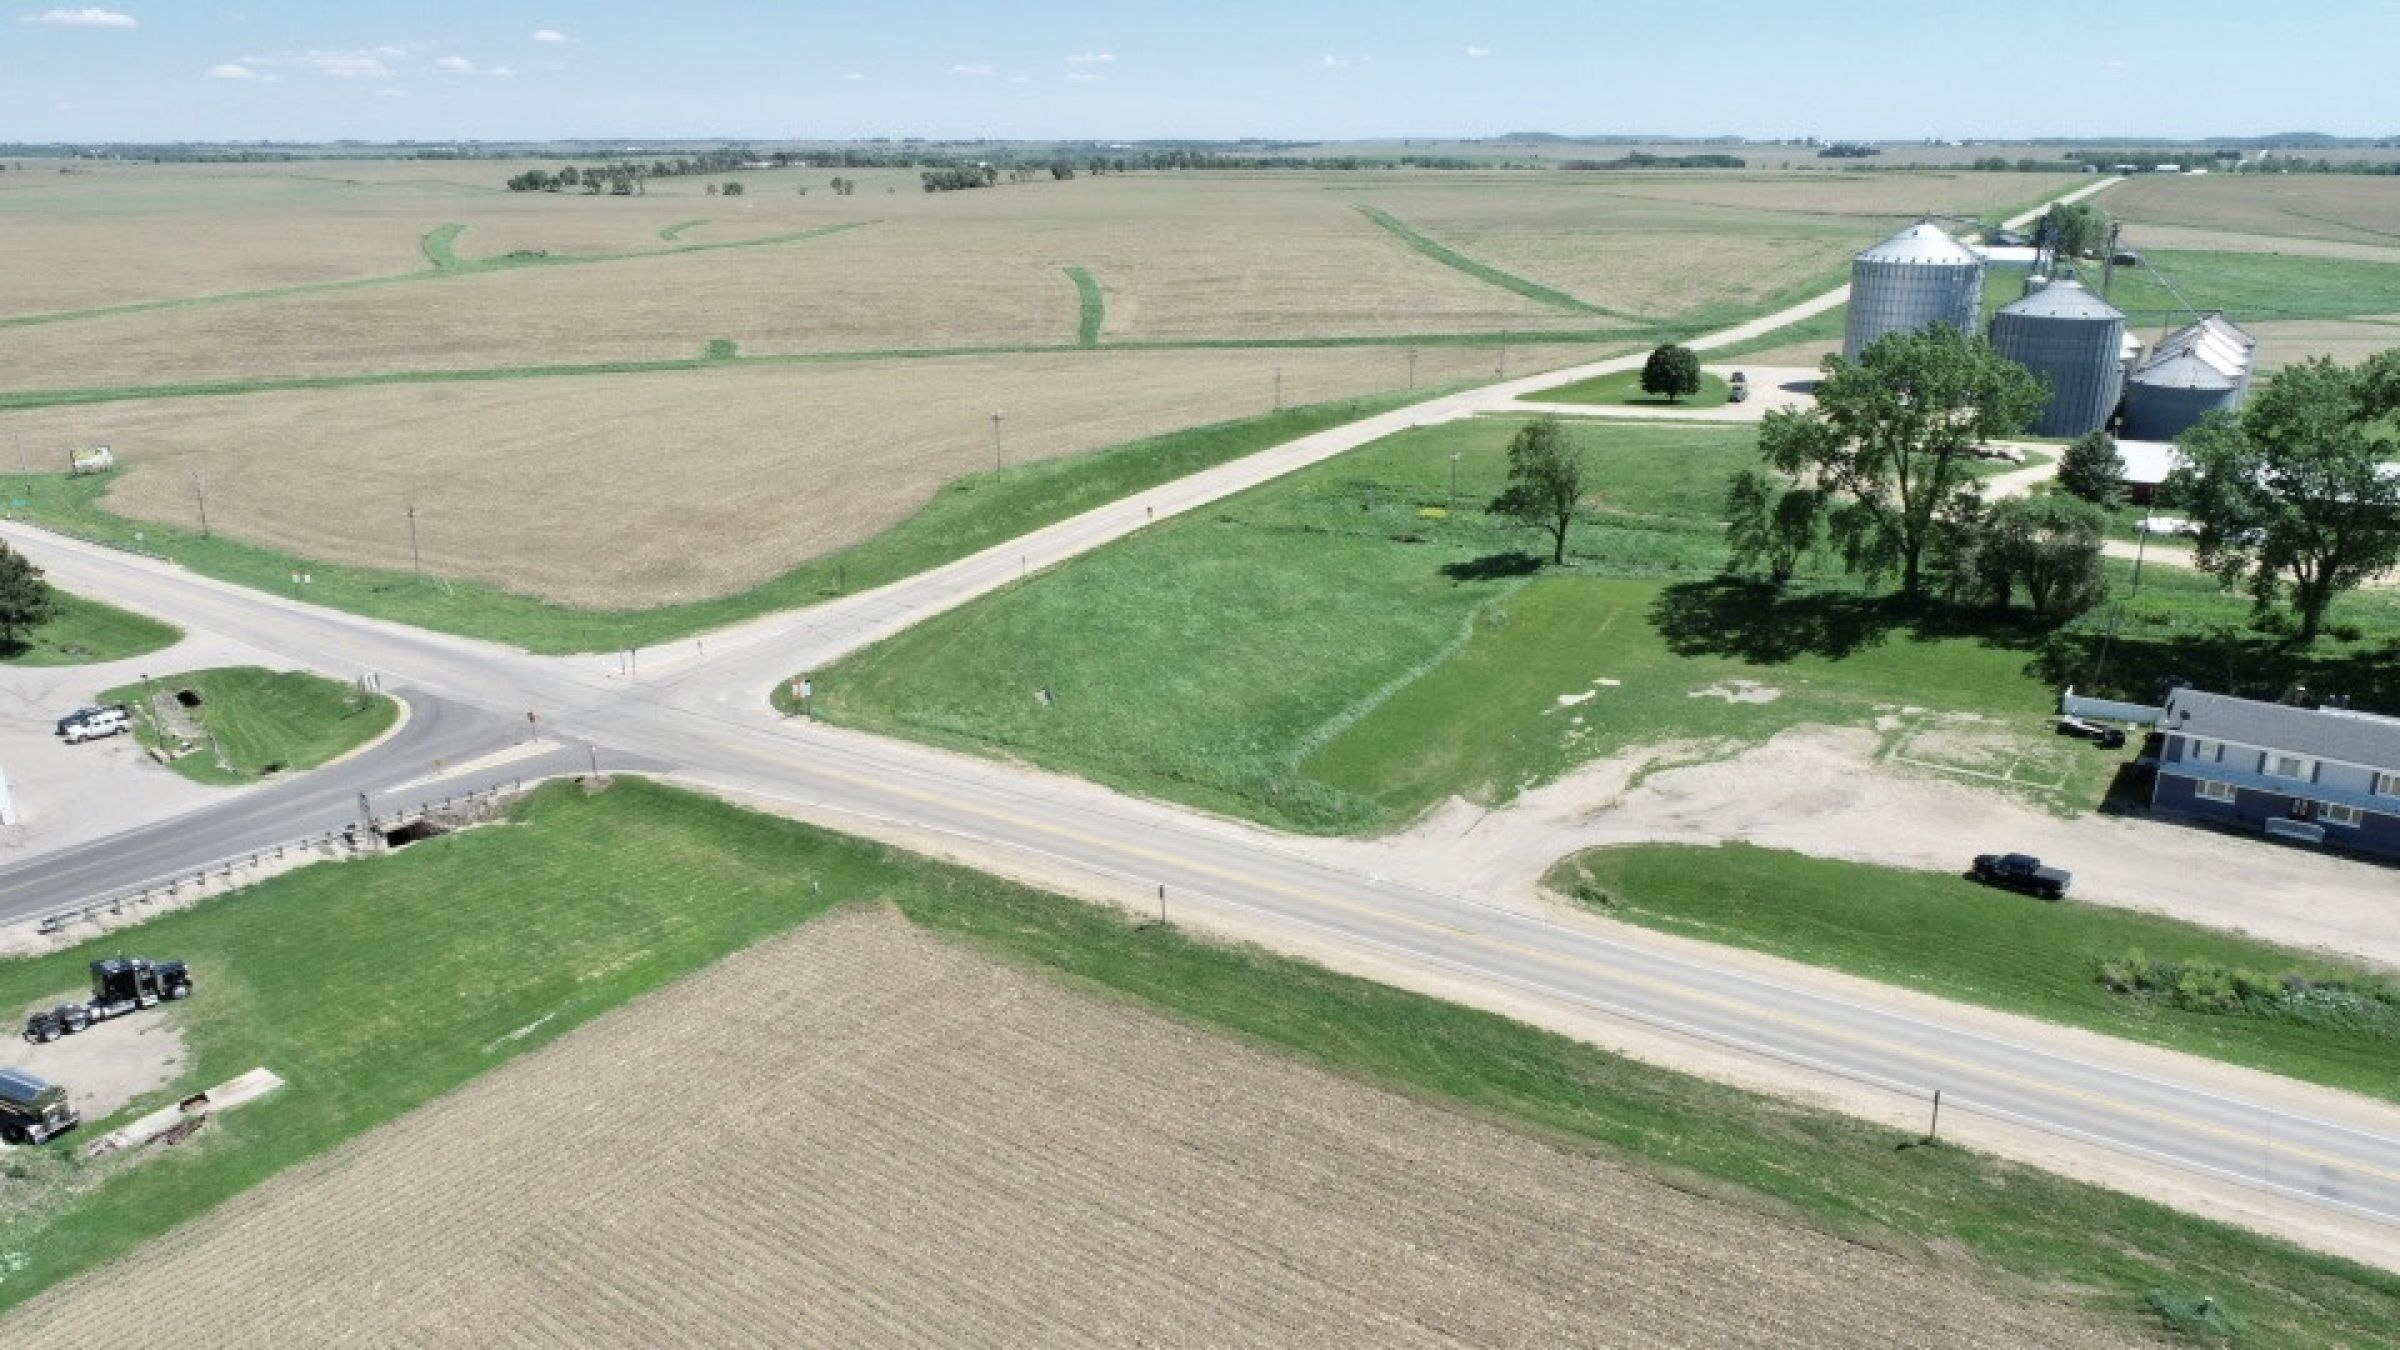 land-commercial-lafayette-county-wisconsin-1-acres-listing-number-15560-1-2021-05-28-185522.jpg